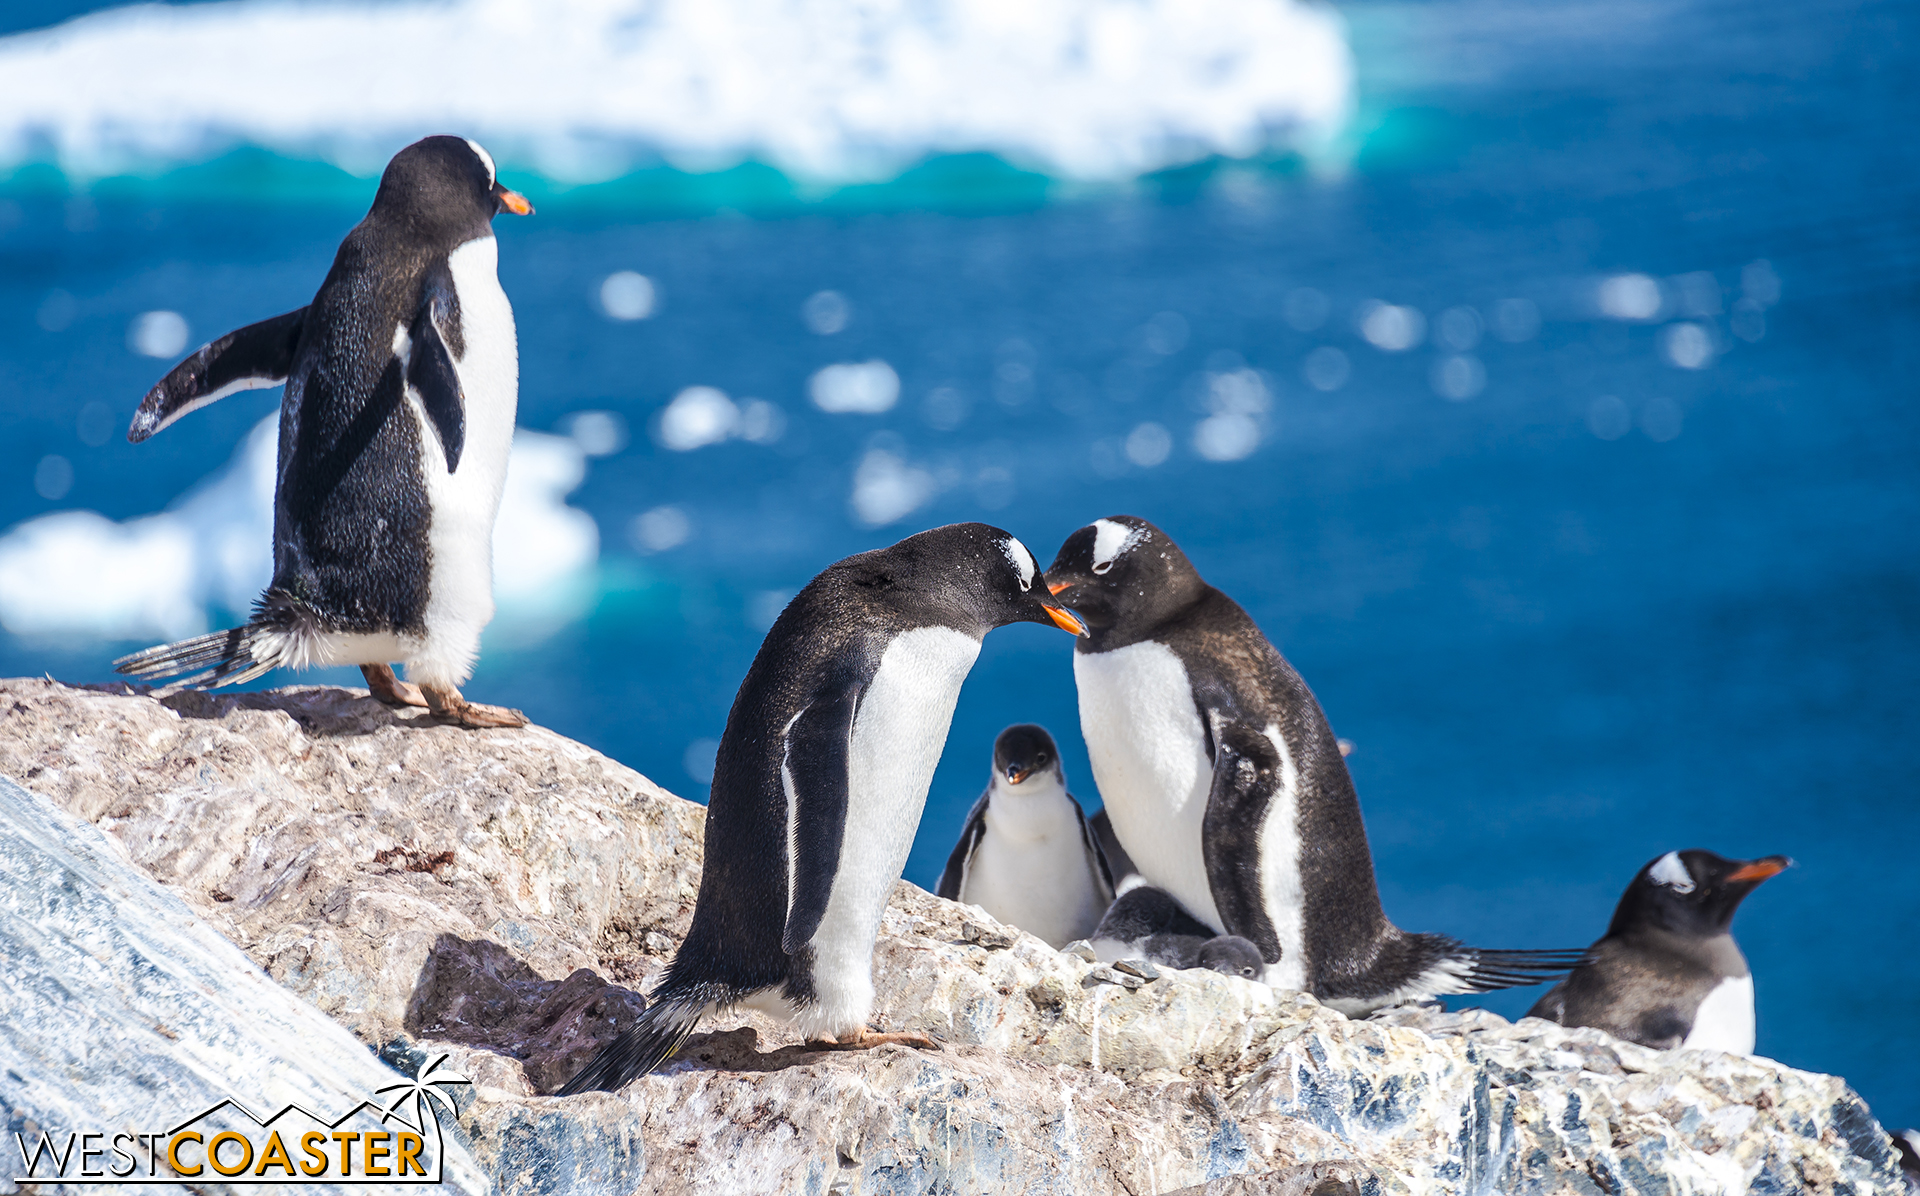 Two penguin parents share a loving moment while framing their chick.